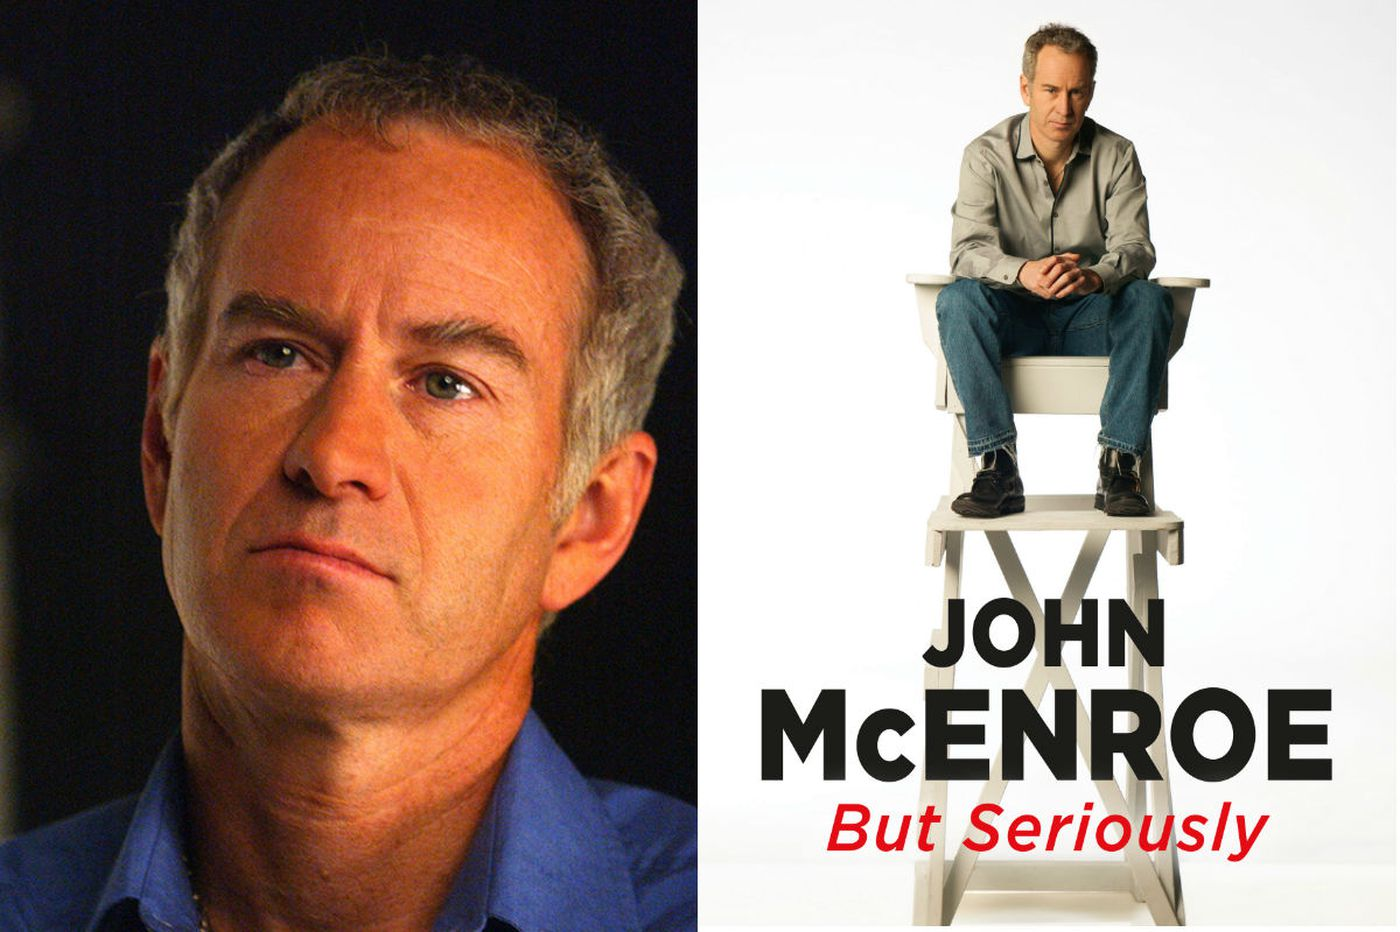 No apologies from John McEnroe in 'But Seriously'